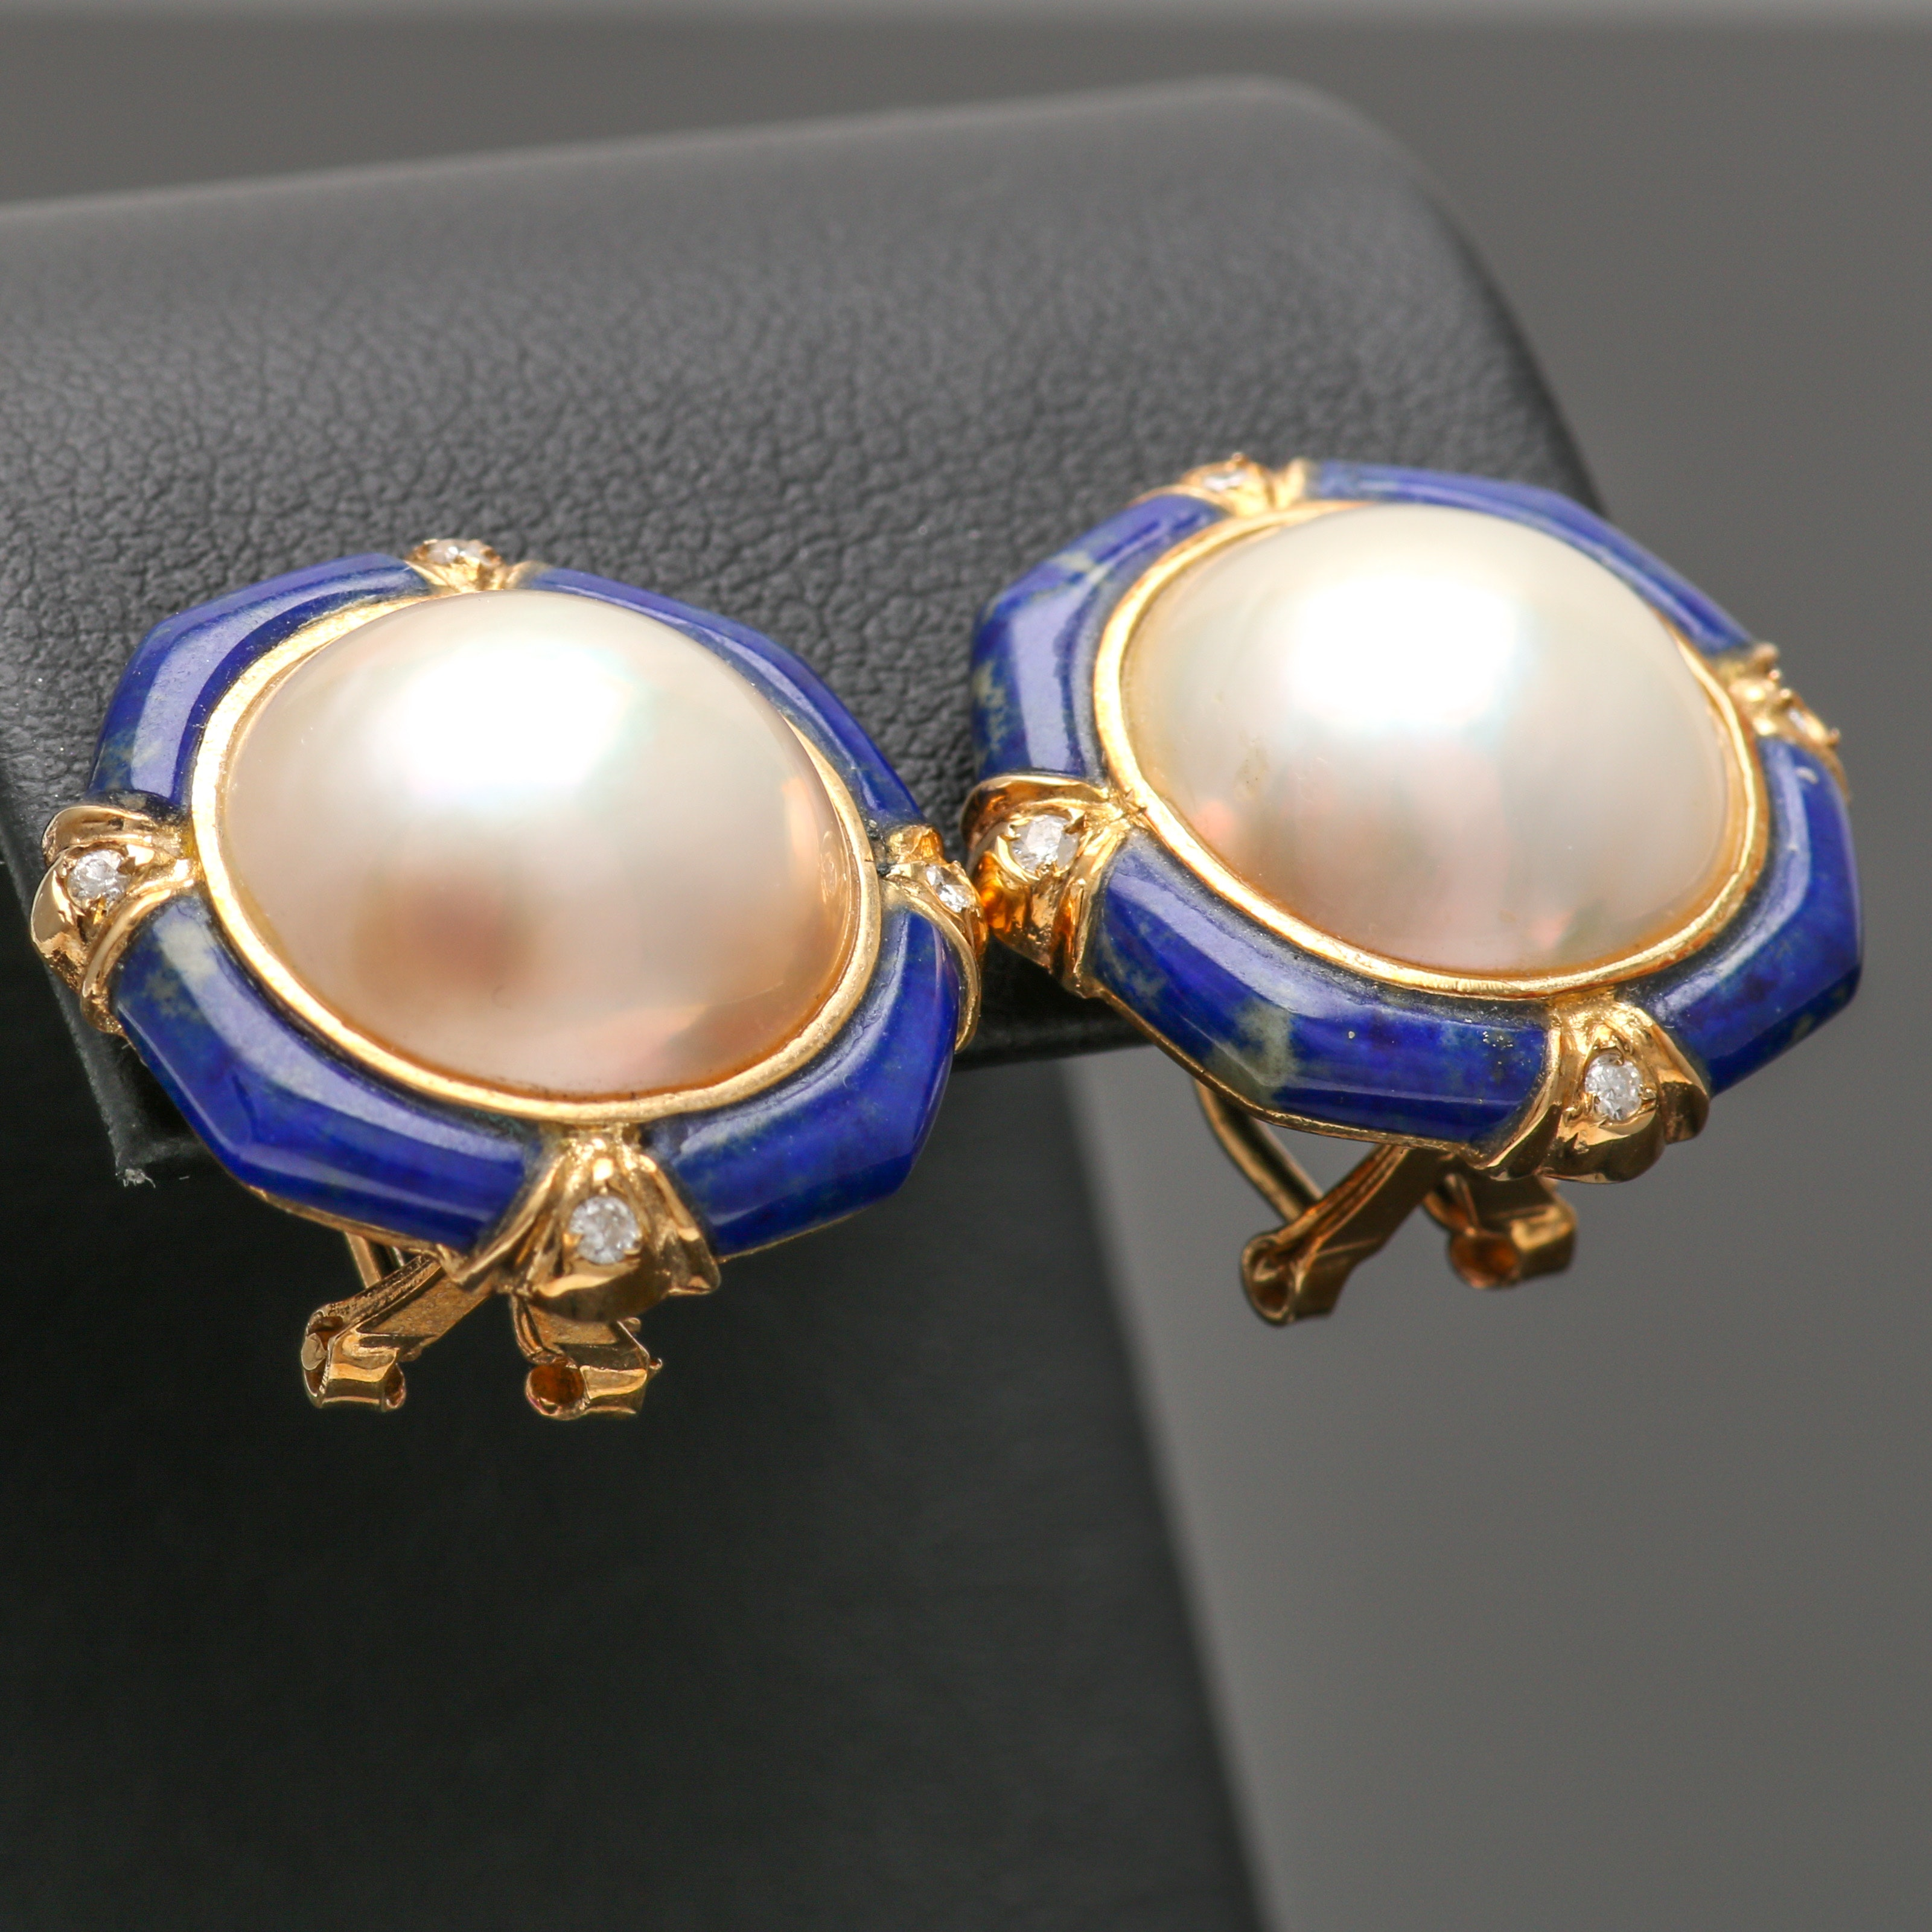 14K Yellow Gold Mabé Pearl, Lapis Lazuli, and Diamond Earrings